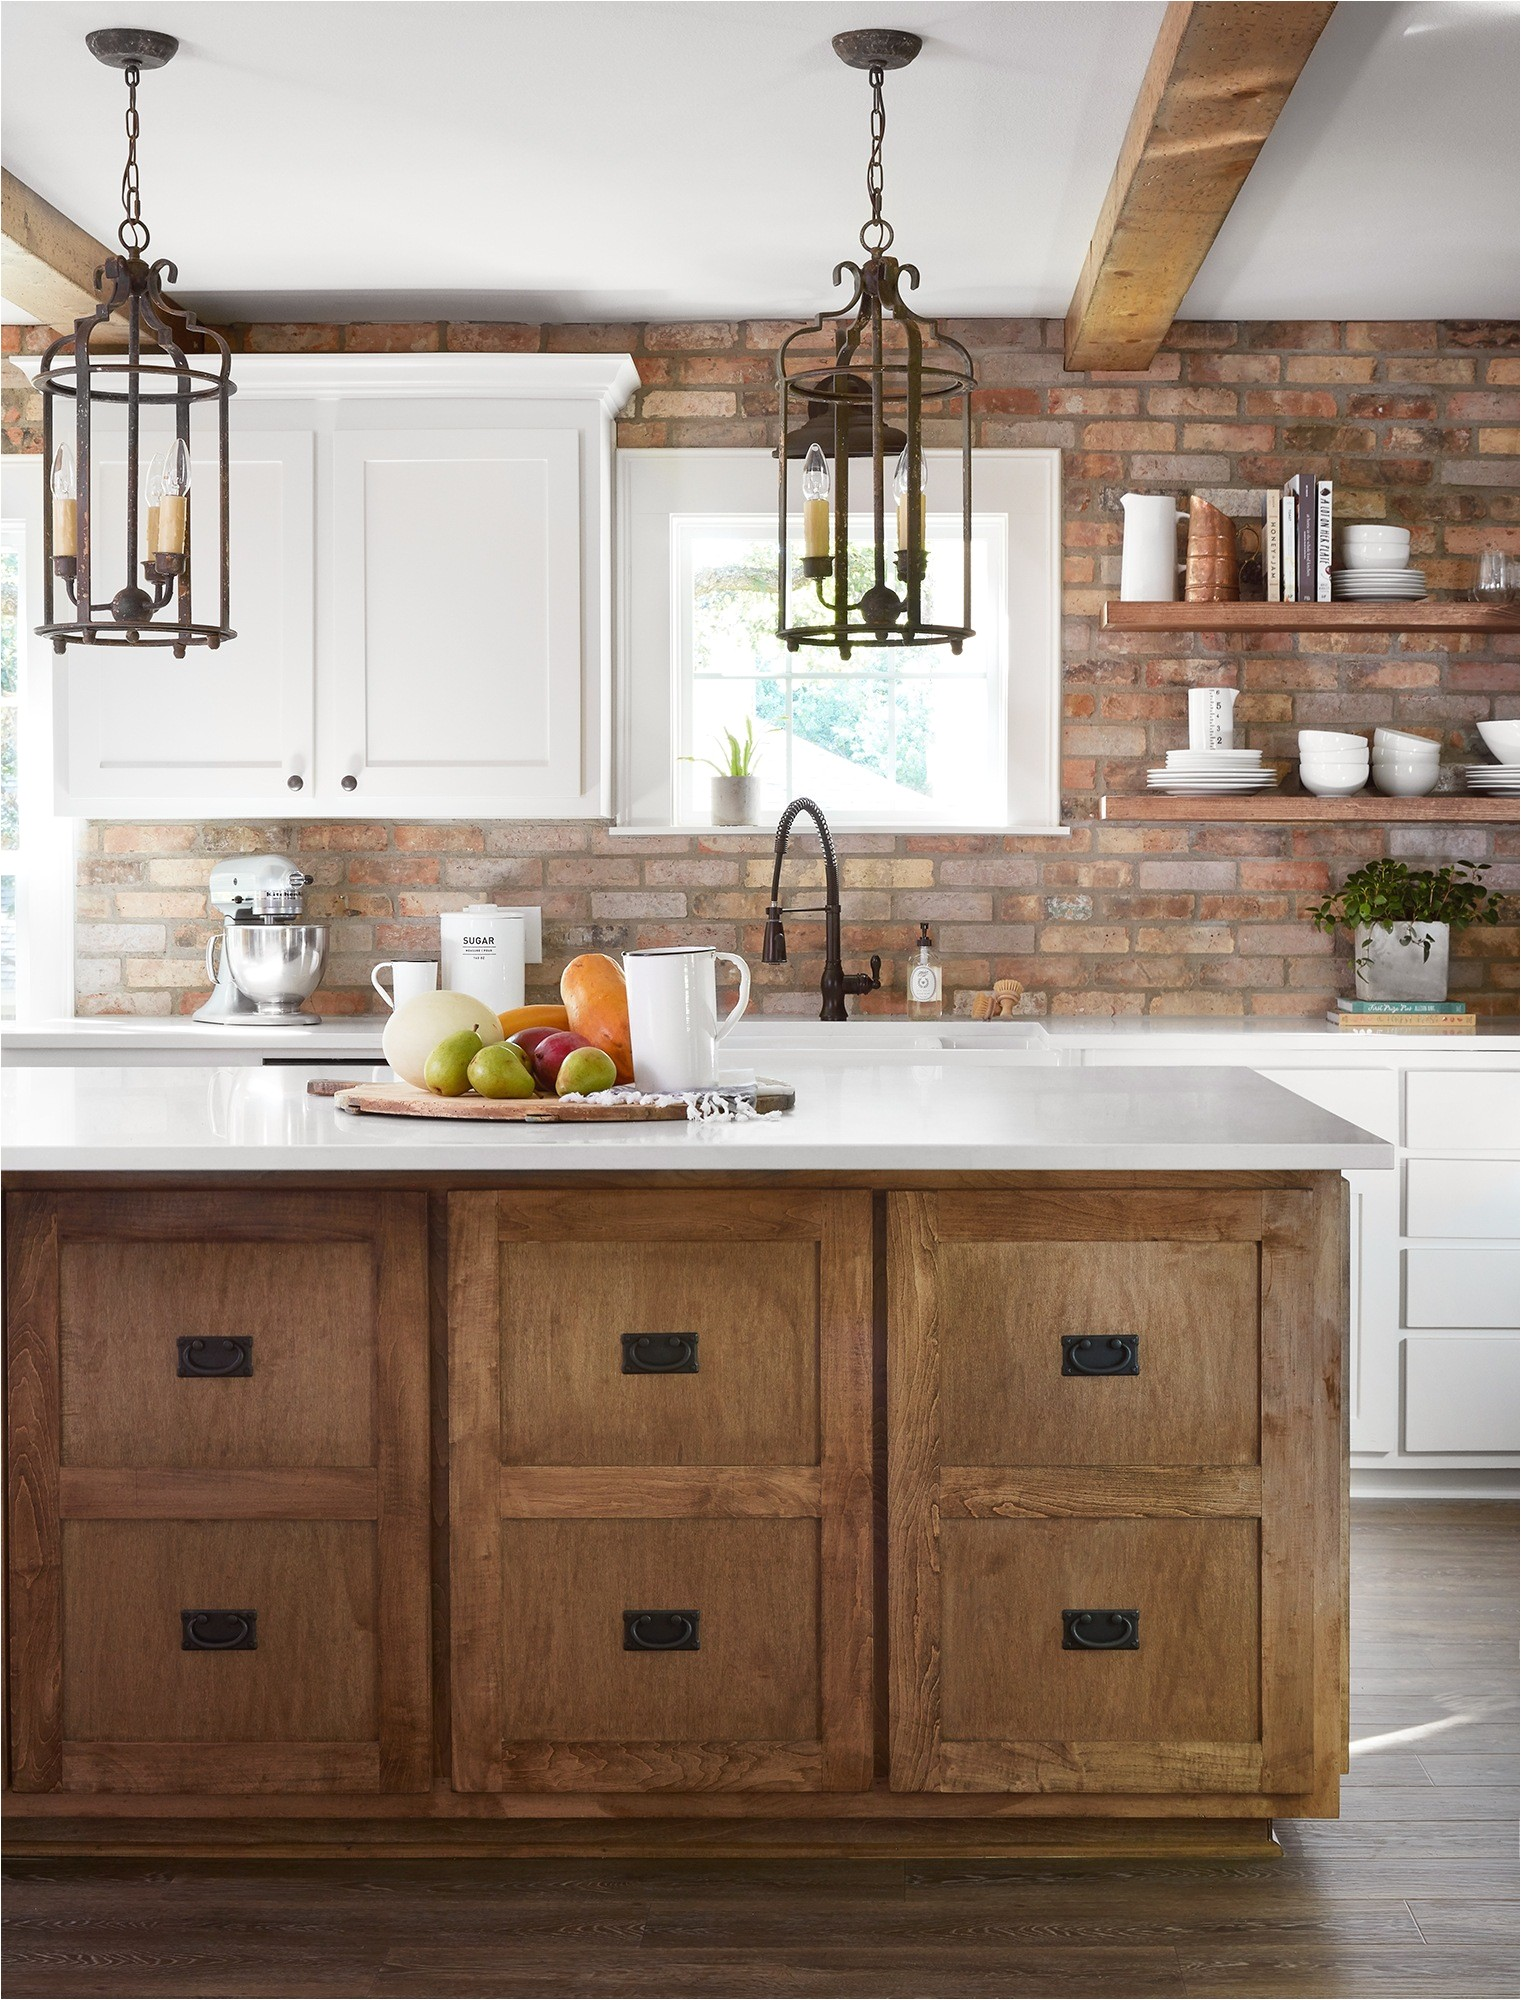 the client really wanted an antique brick backsplash so we carried it from countertops to ceiling to make a bold statement we kept the rest simple with